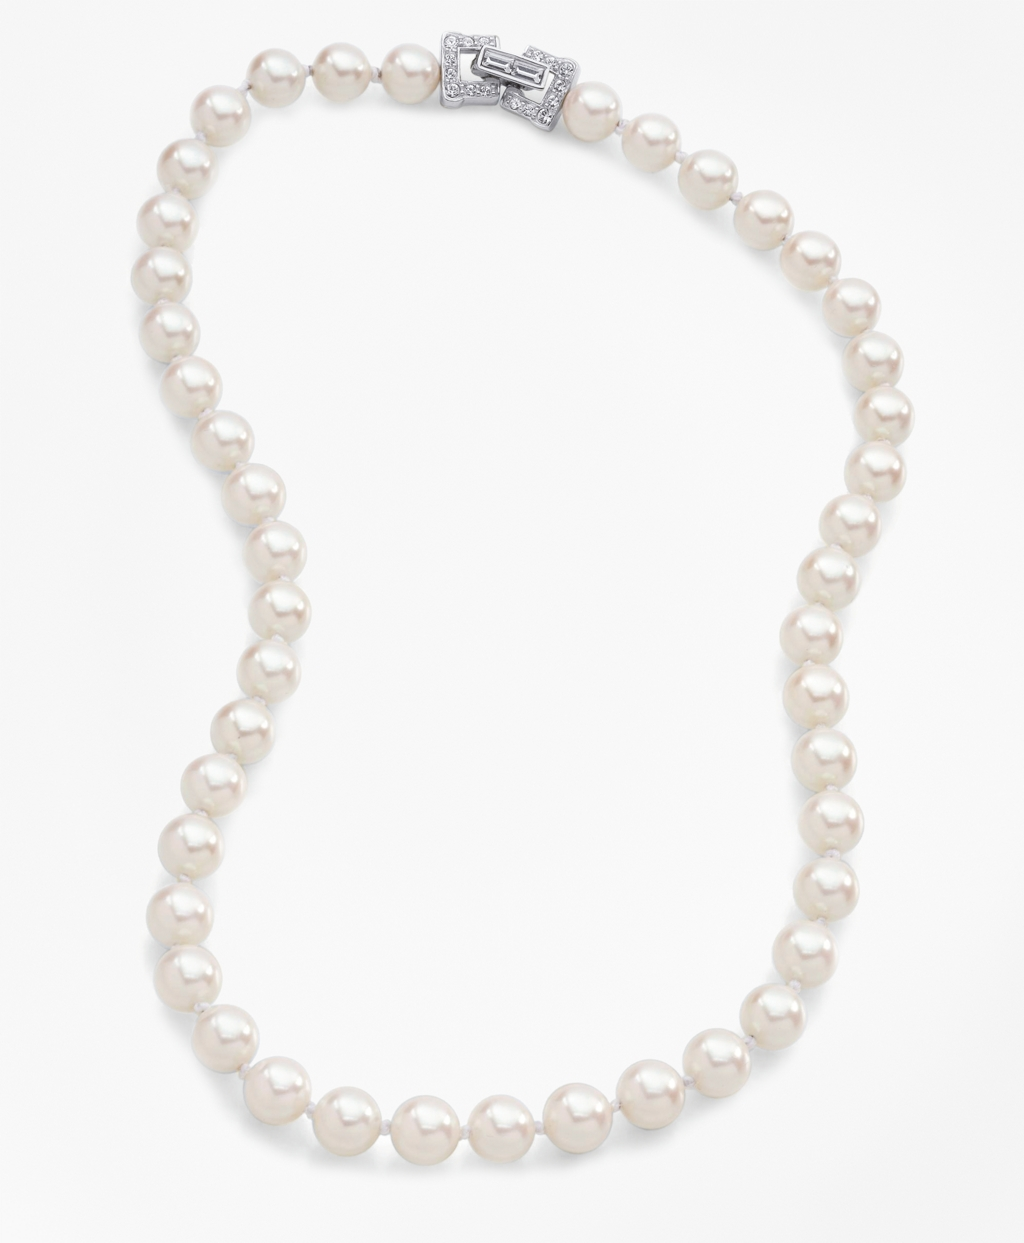 1930s Jewelry | Art Deco Style Jewelry Brooks Brothers Womens Glass Pearl Necklace $298.00 AT vintagedancer.com